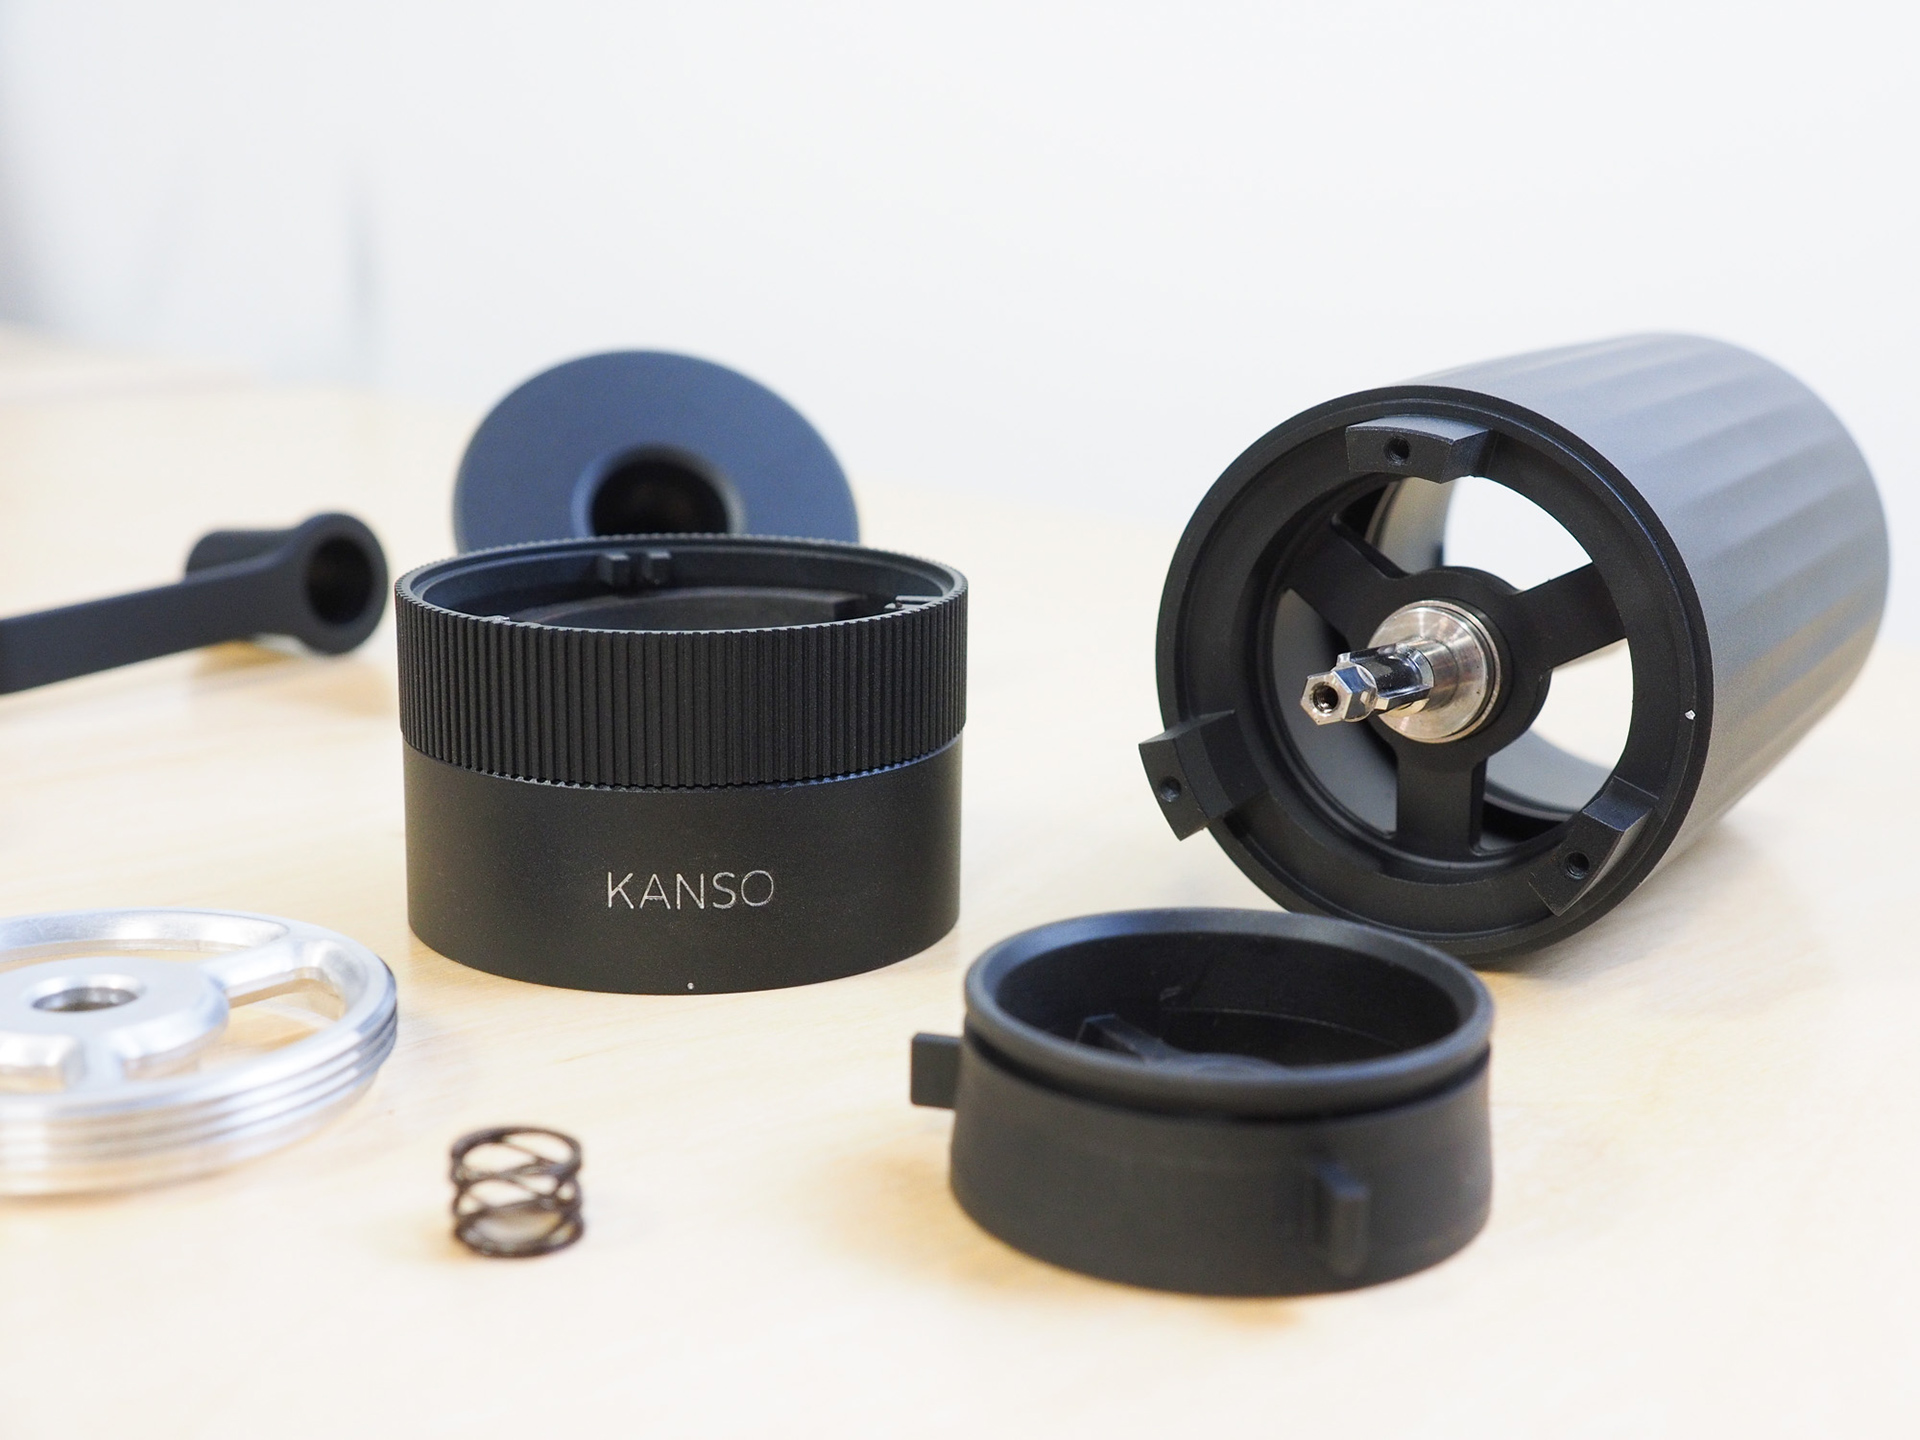 A photo of HIKU, disassembled and arranged in an aesthetically pleasing way to showcase its internal hardware.